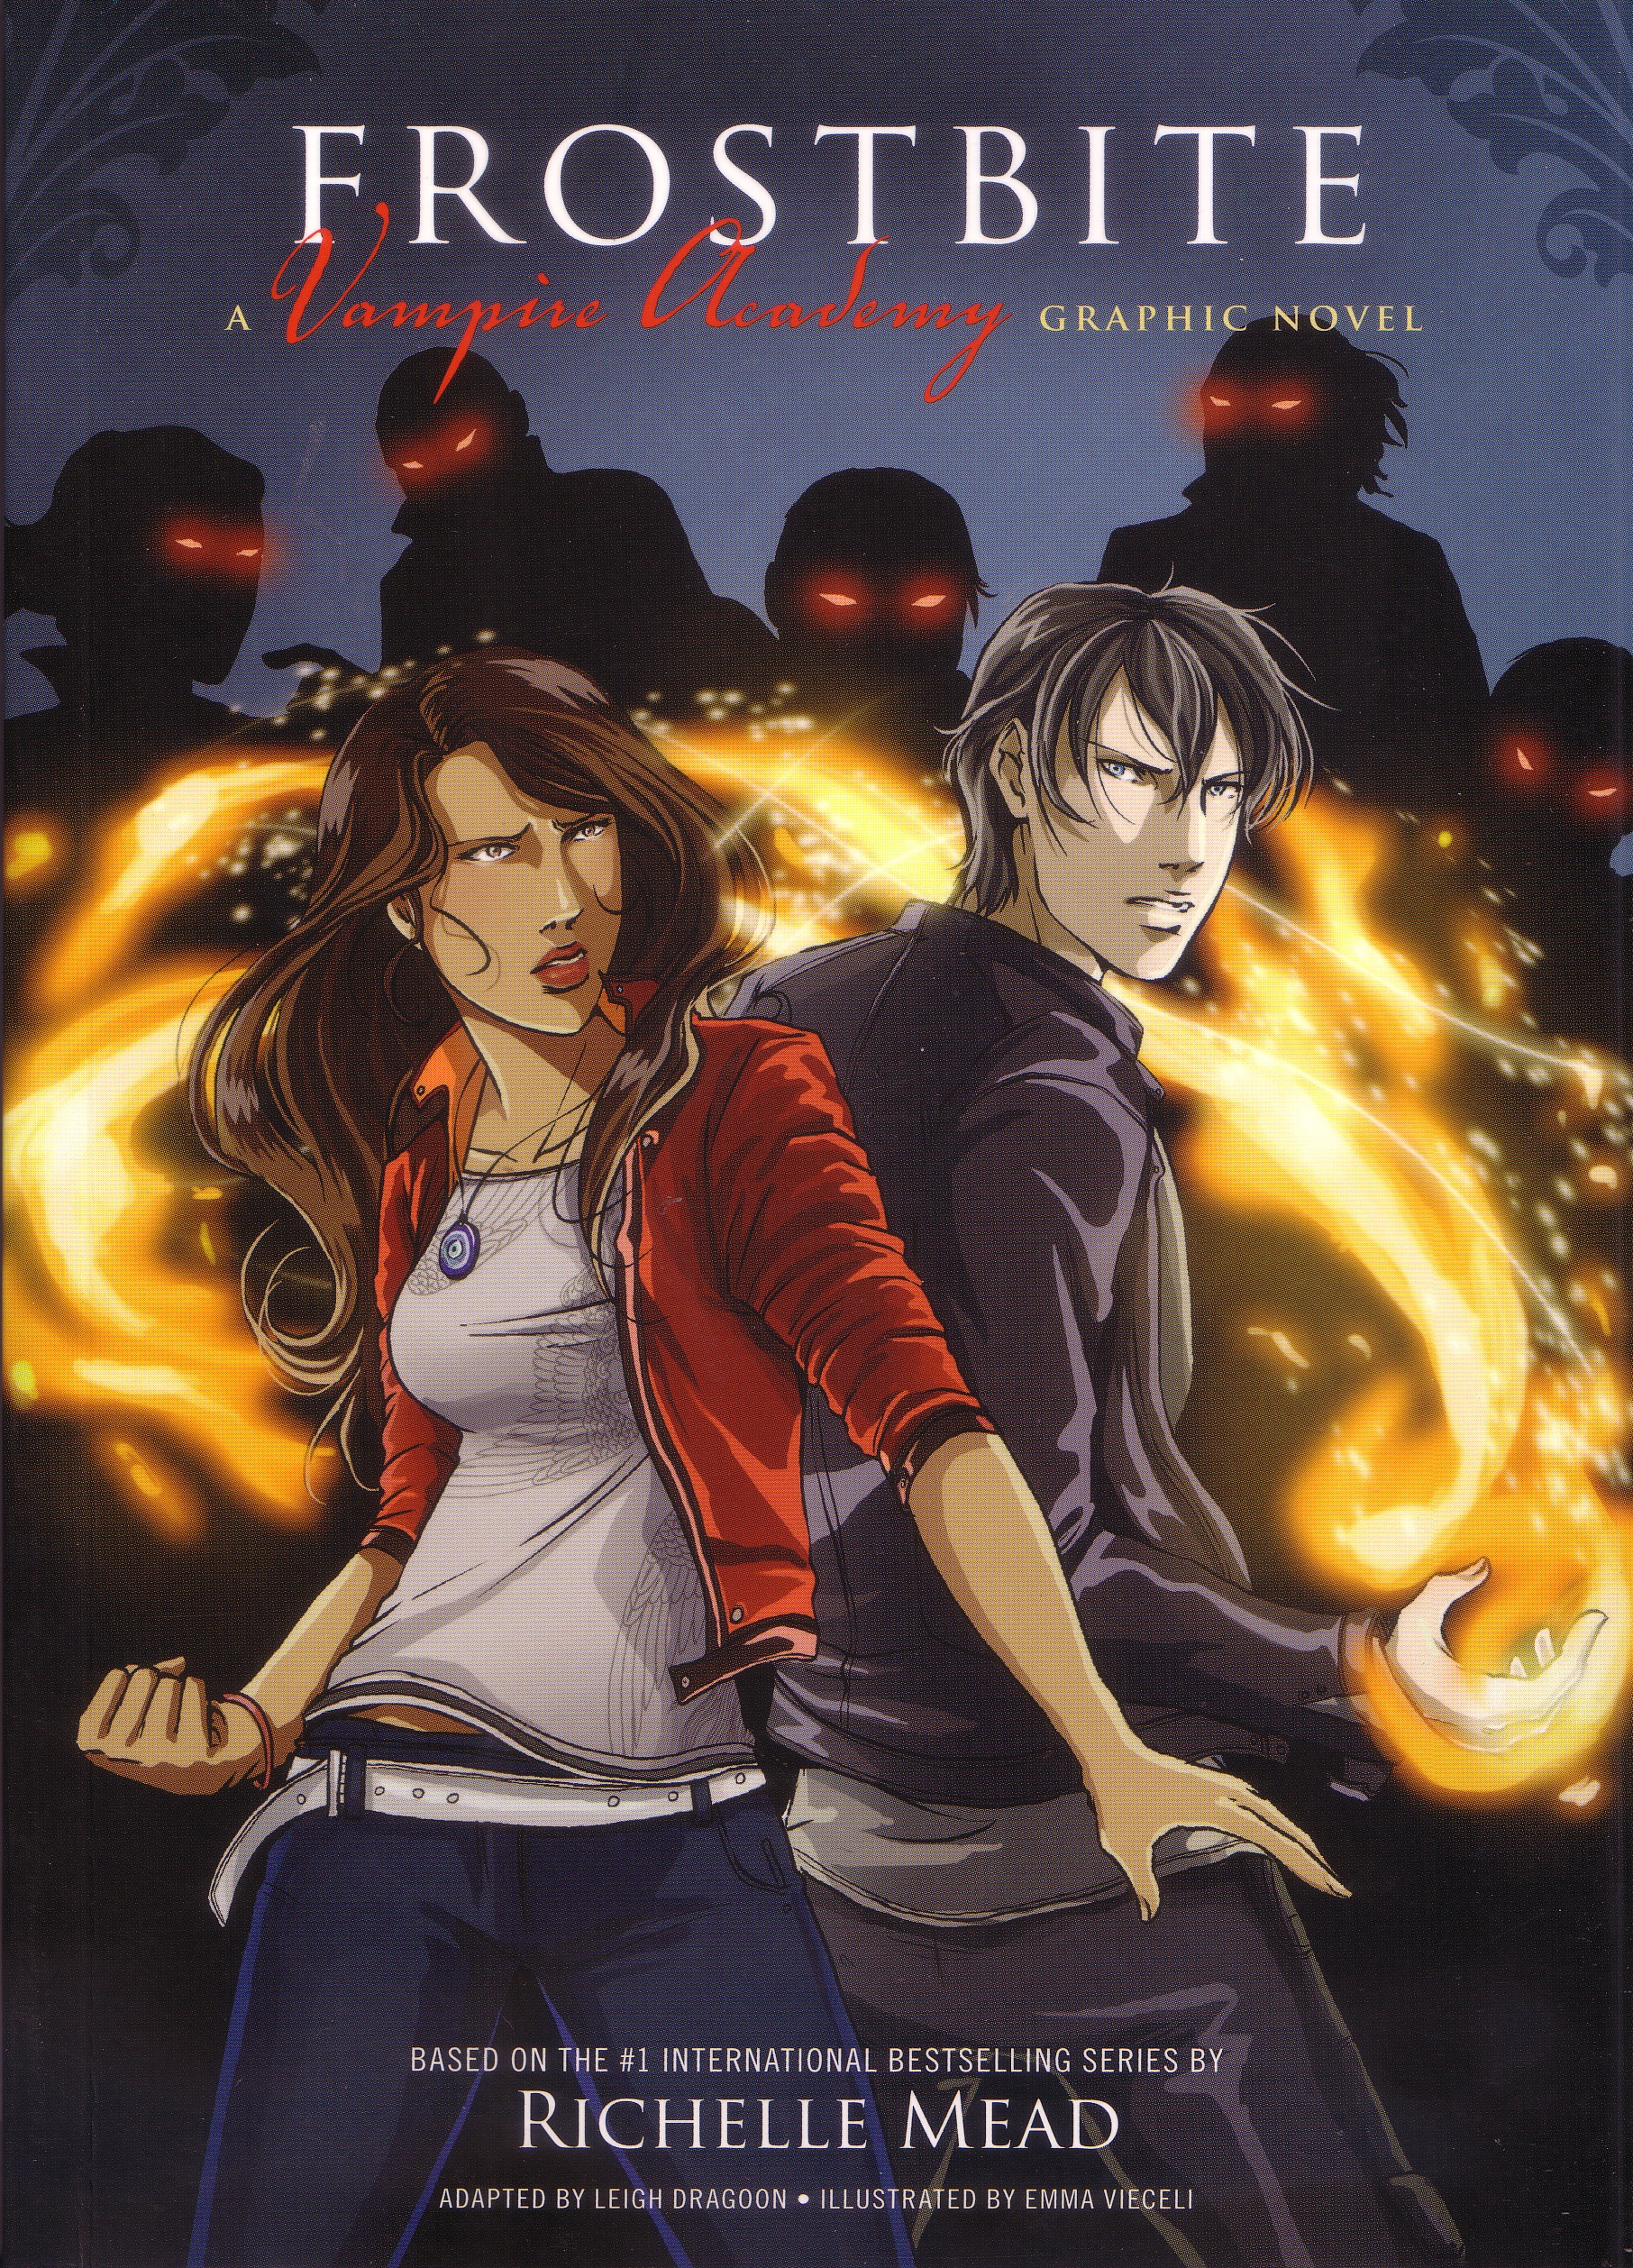 Frostbite: Vampire Academy Graphic Novel Book 2 by Emma Vieceli & Richelle Mead, ISBN: 9781921518973